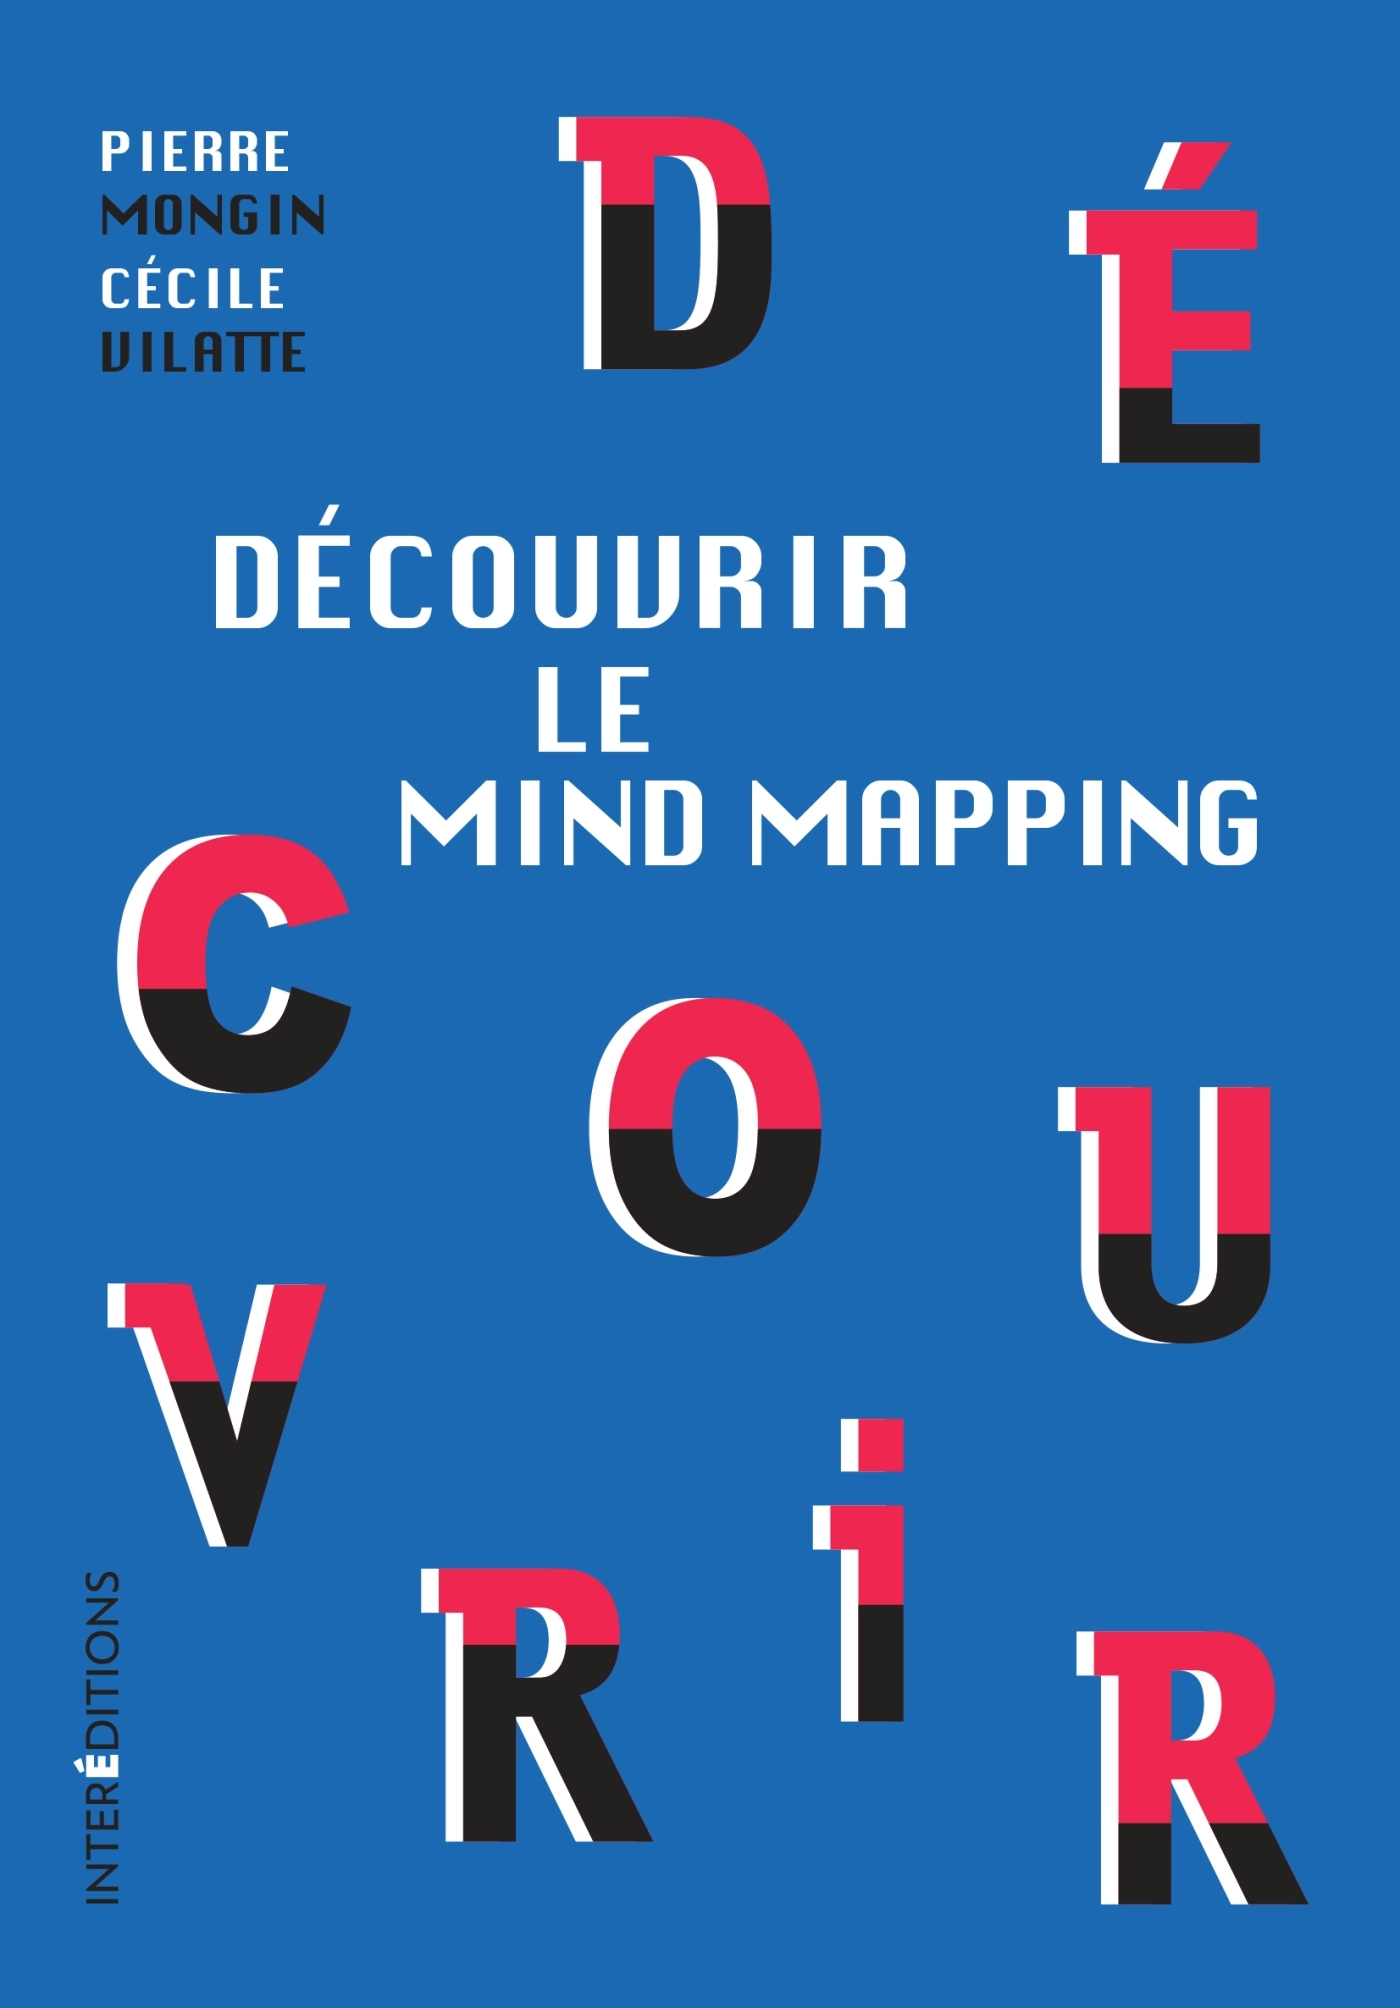 DECOUVRIR LE MIND MAPPING